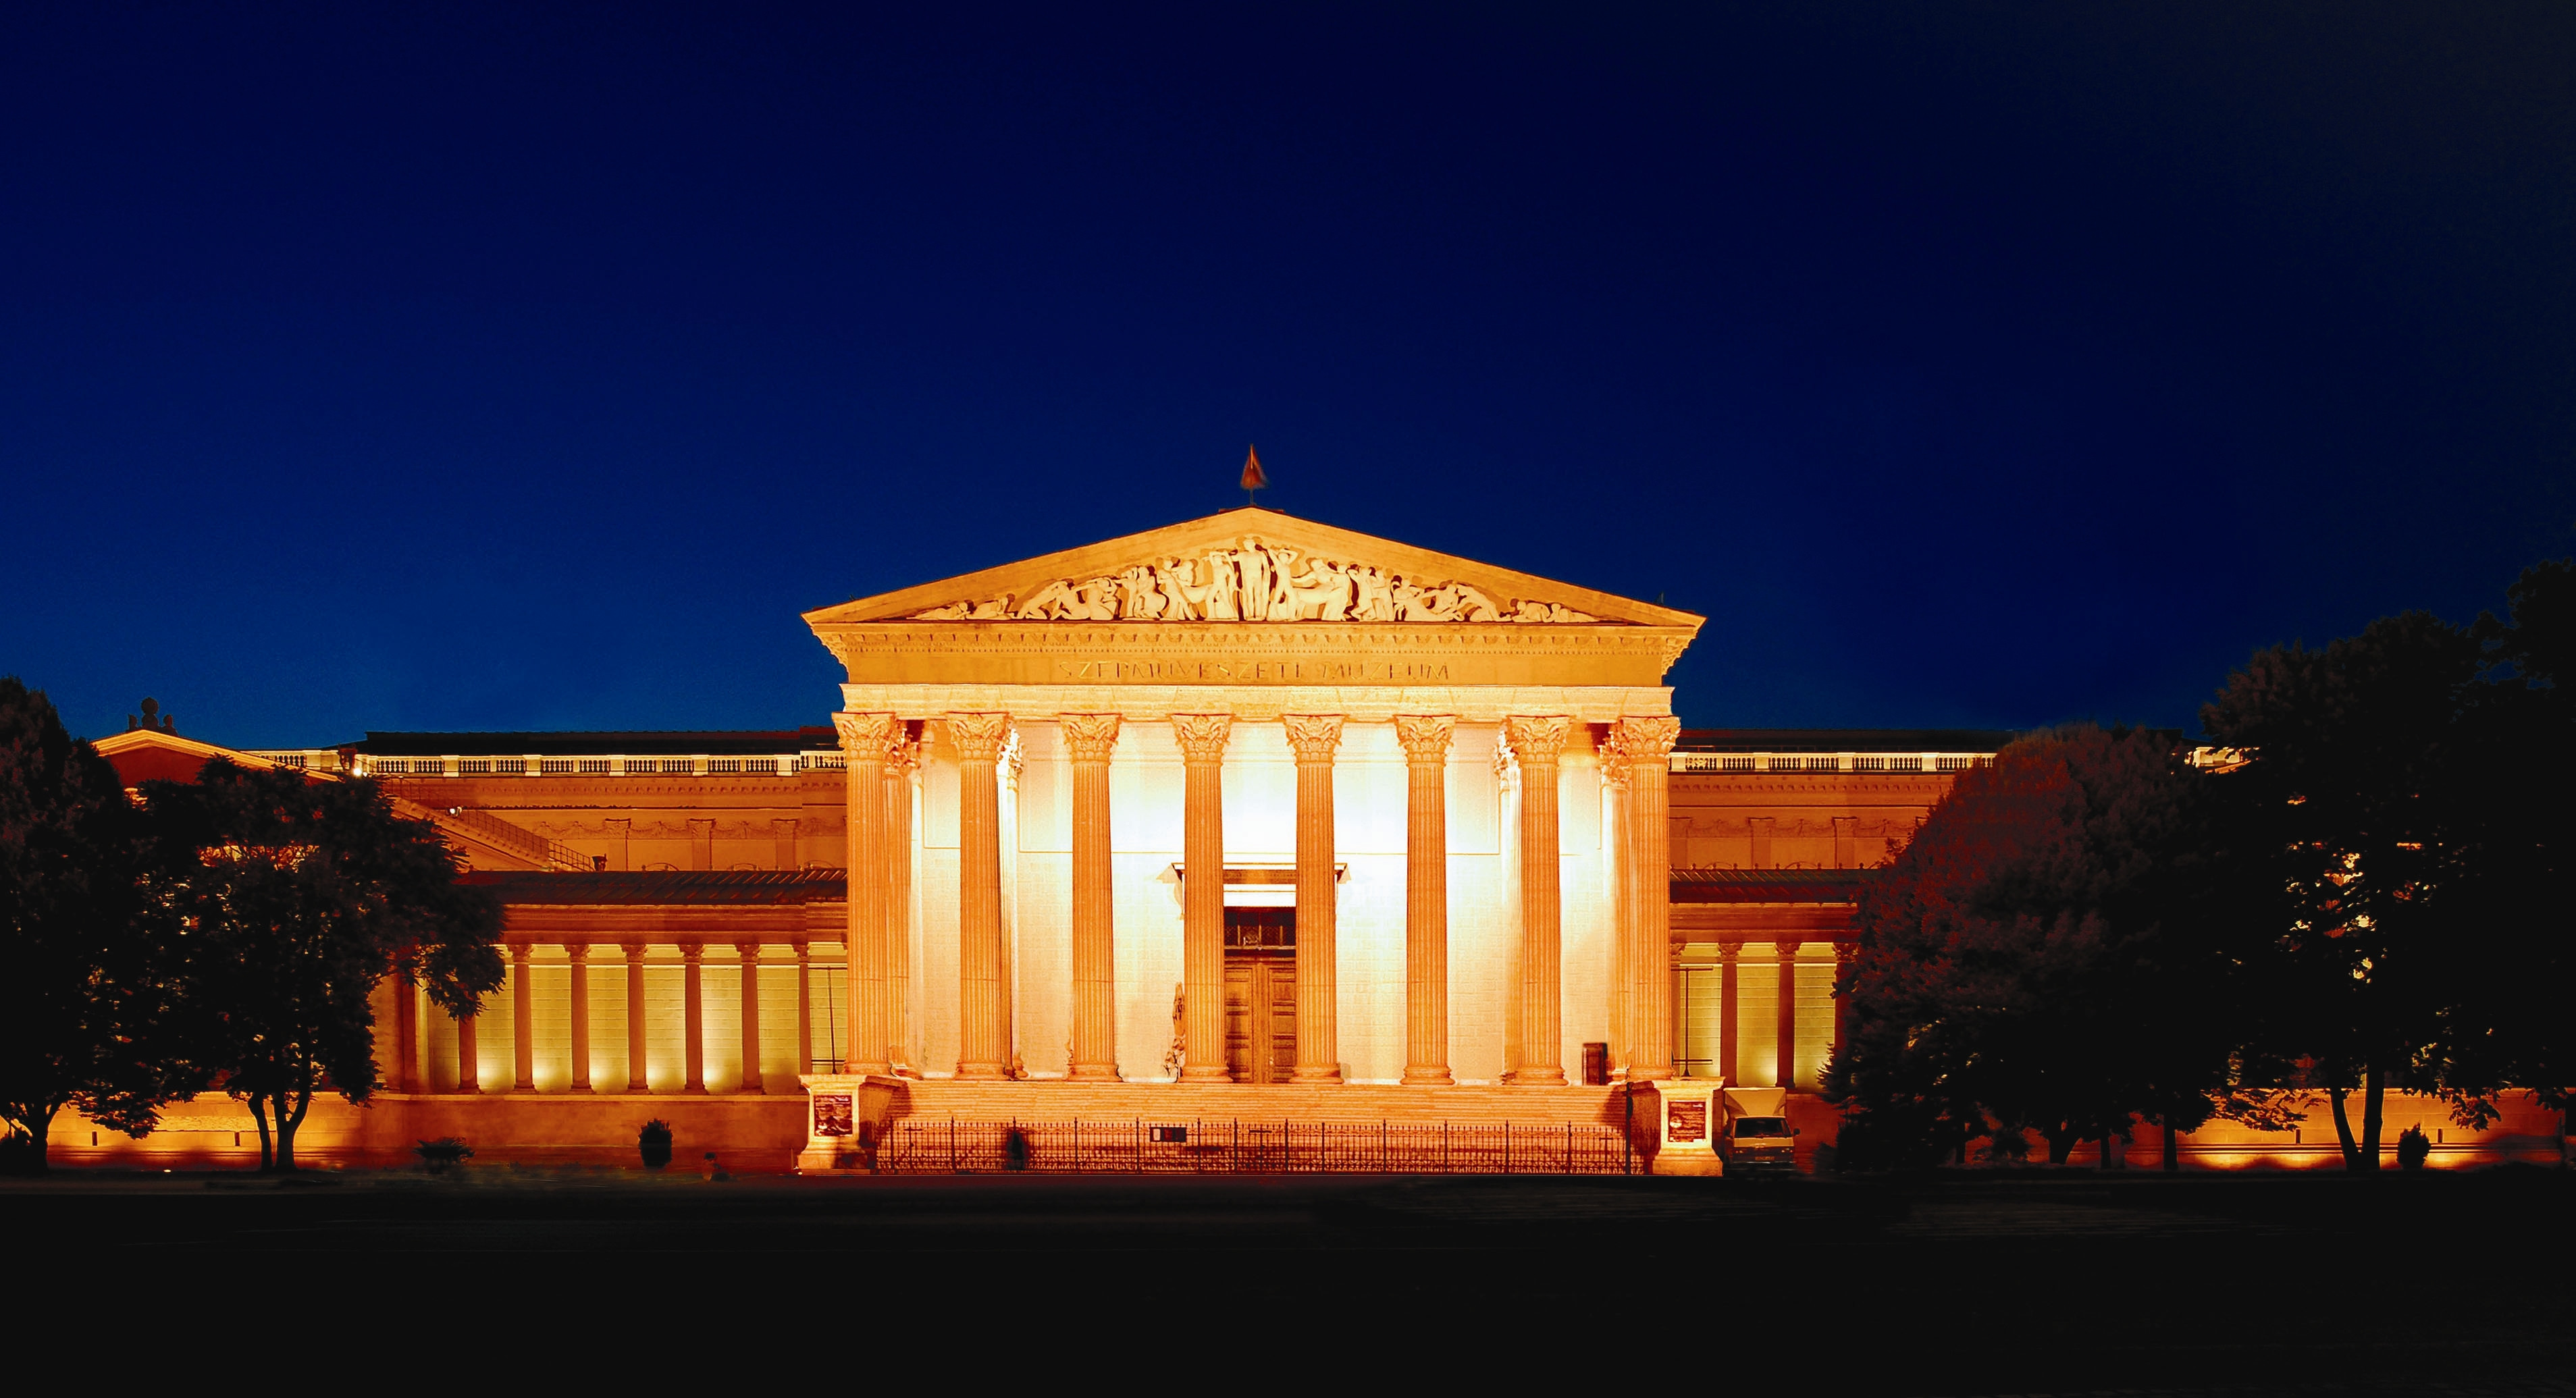 The reconstruction of the Museum of Fine Arts Recognised with the Europa Nostra Award